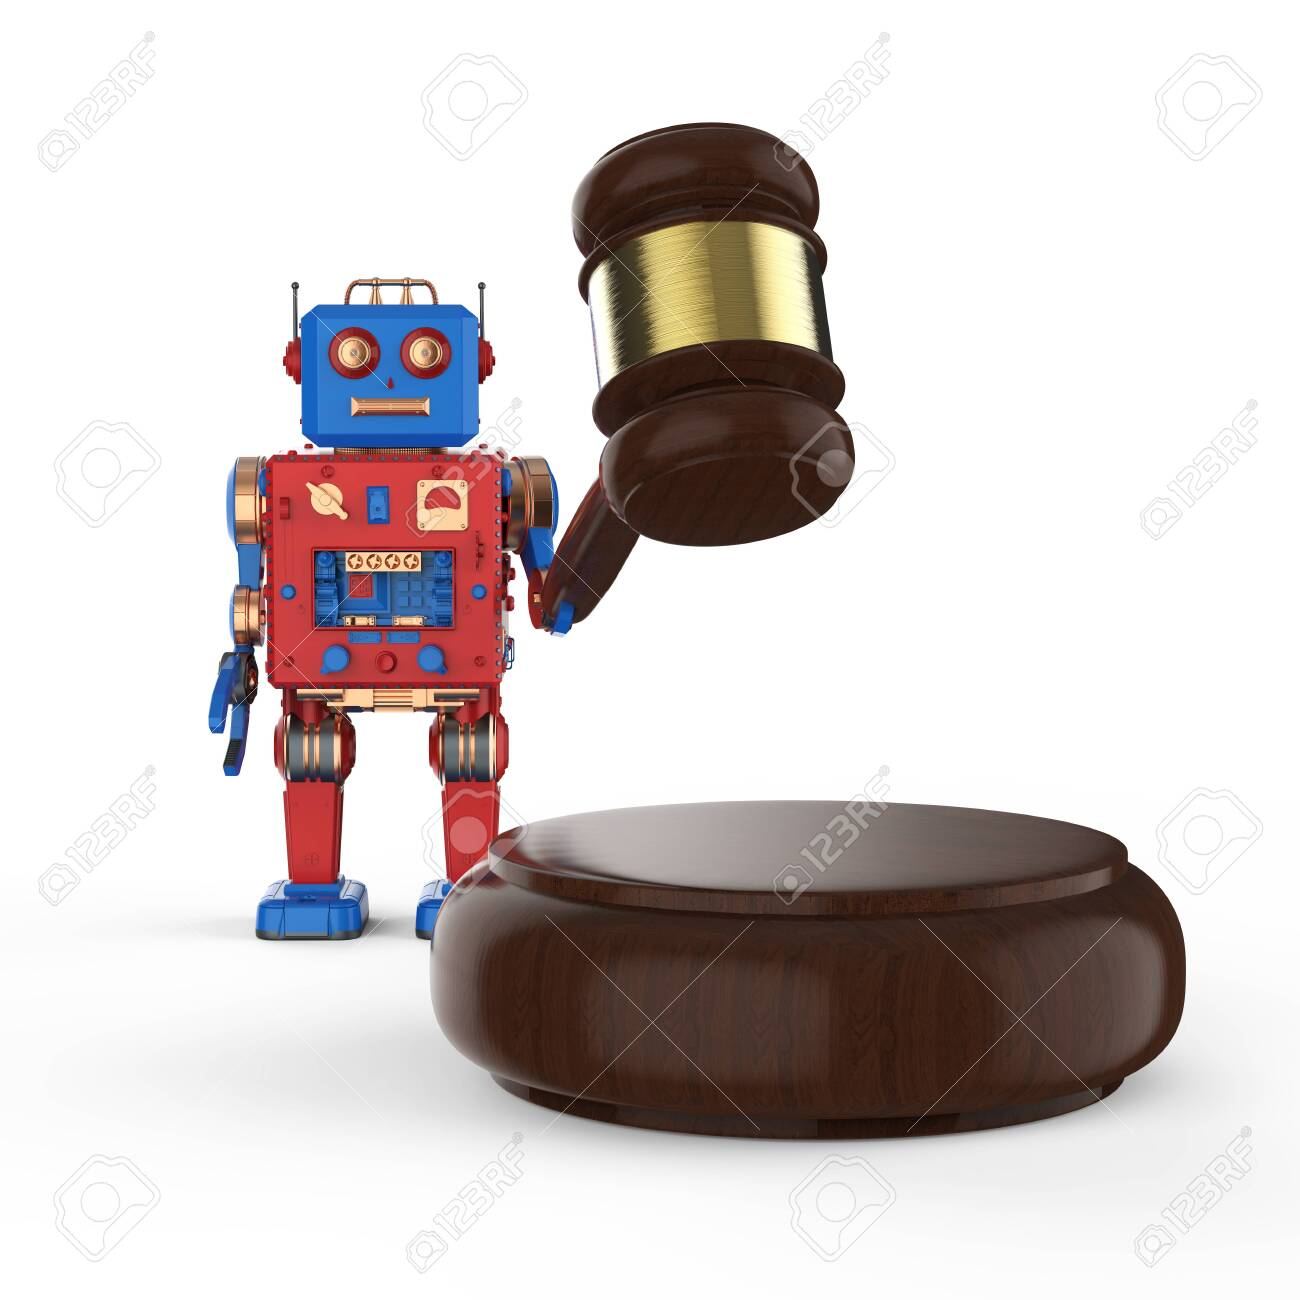 Cyber law concept with 3d rendering robot tin toy with gavel judge on white background - 128795112